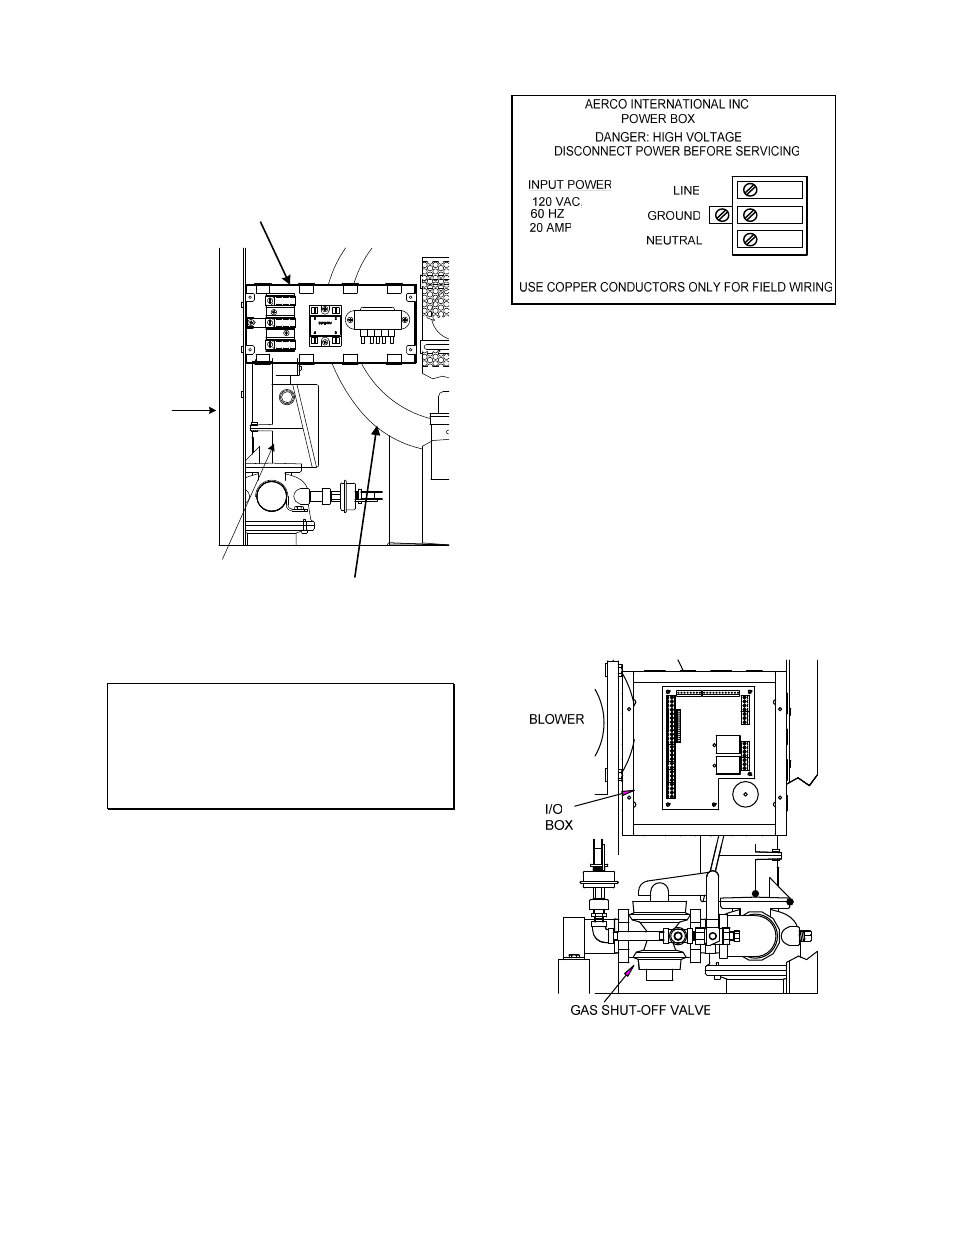 6 mode of operation and field control wiring installation aerco rh manualsdir com aerco boiler installation manual Boiler Control Wiring